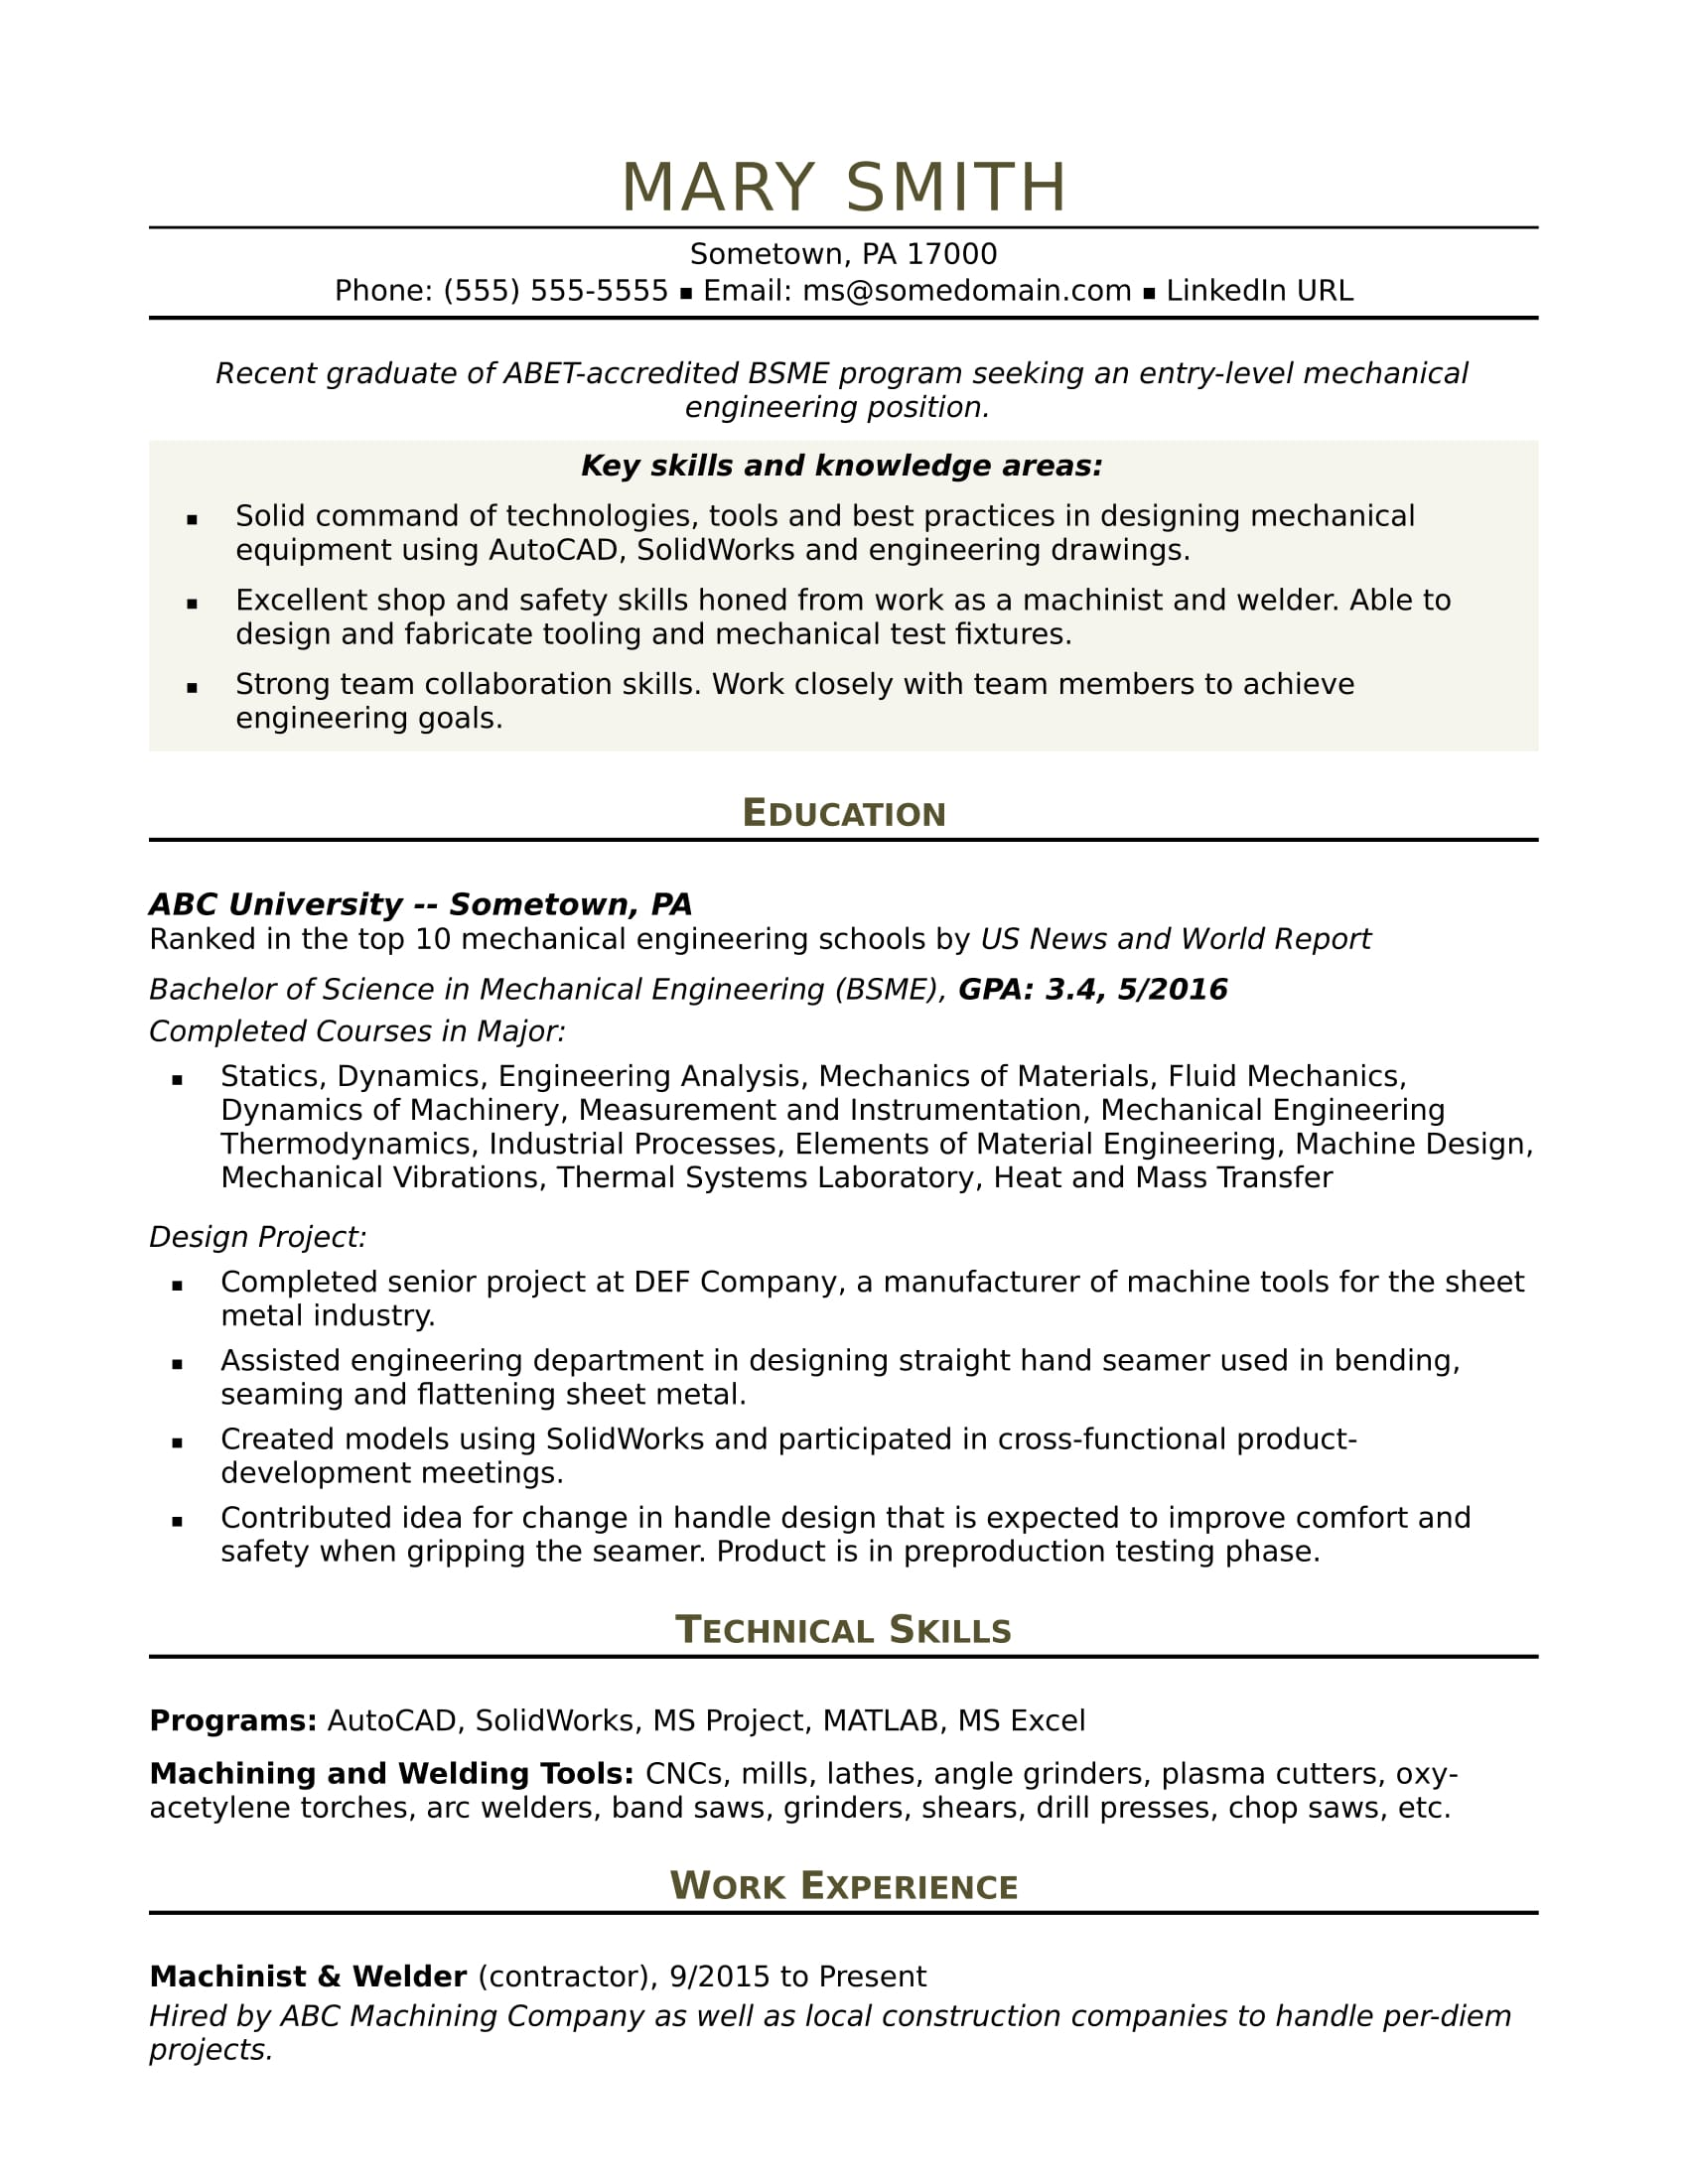 Sample Resume For An Entry Level Mechanical Engineer  Entry Level Electrical Engineering Resume